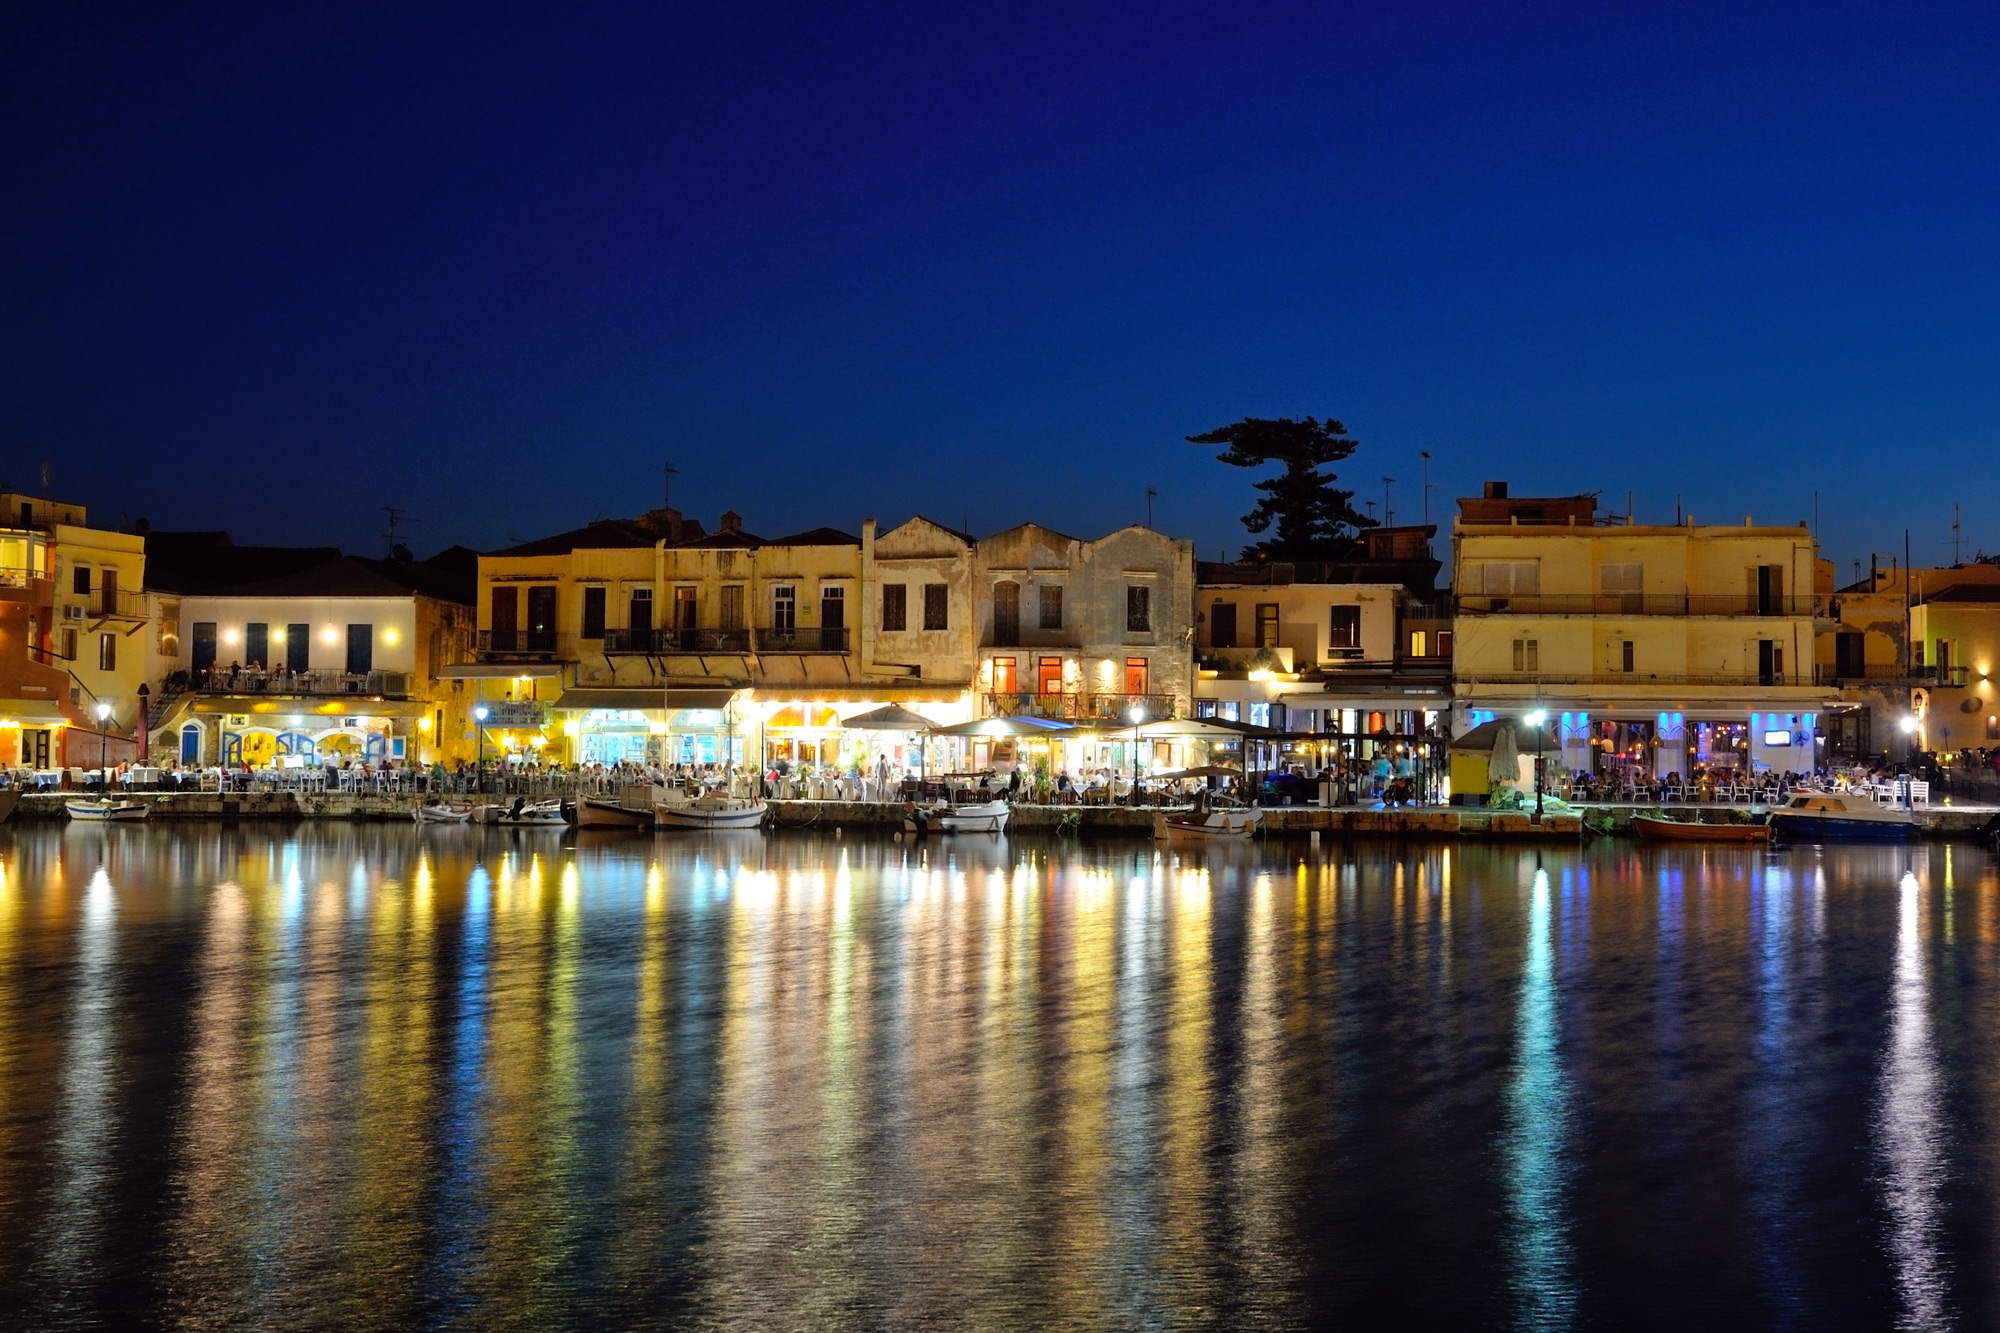 Old Venetian Harbor Rethymno